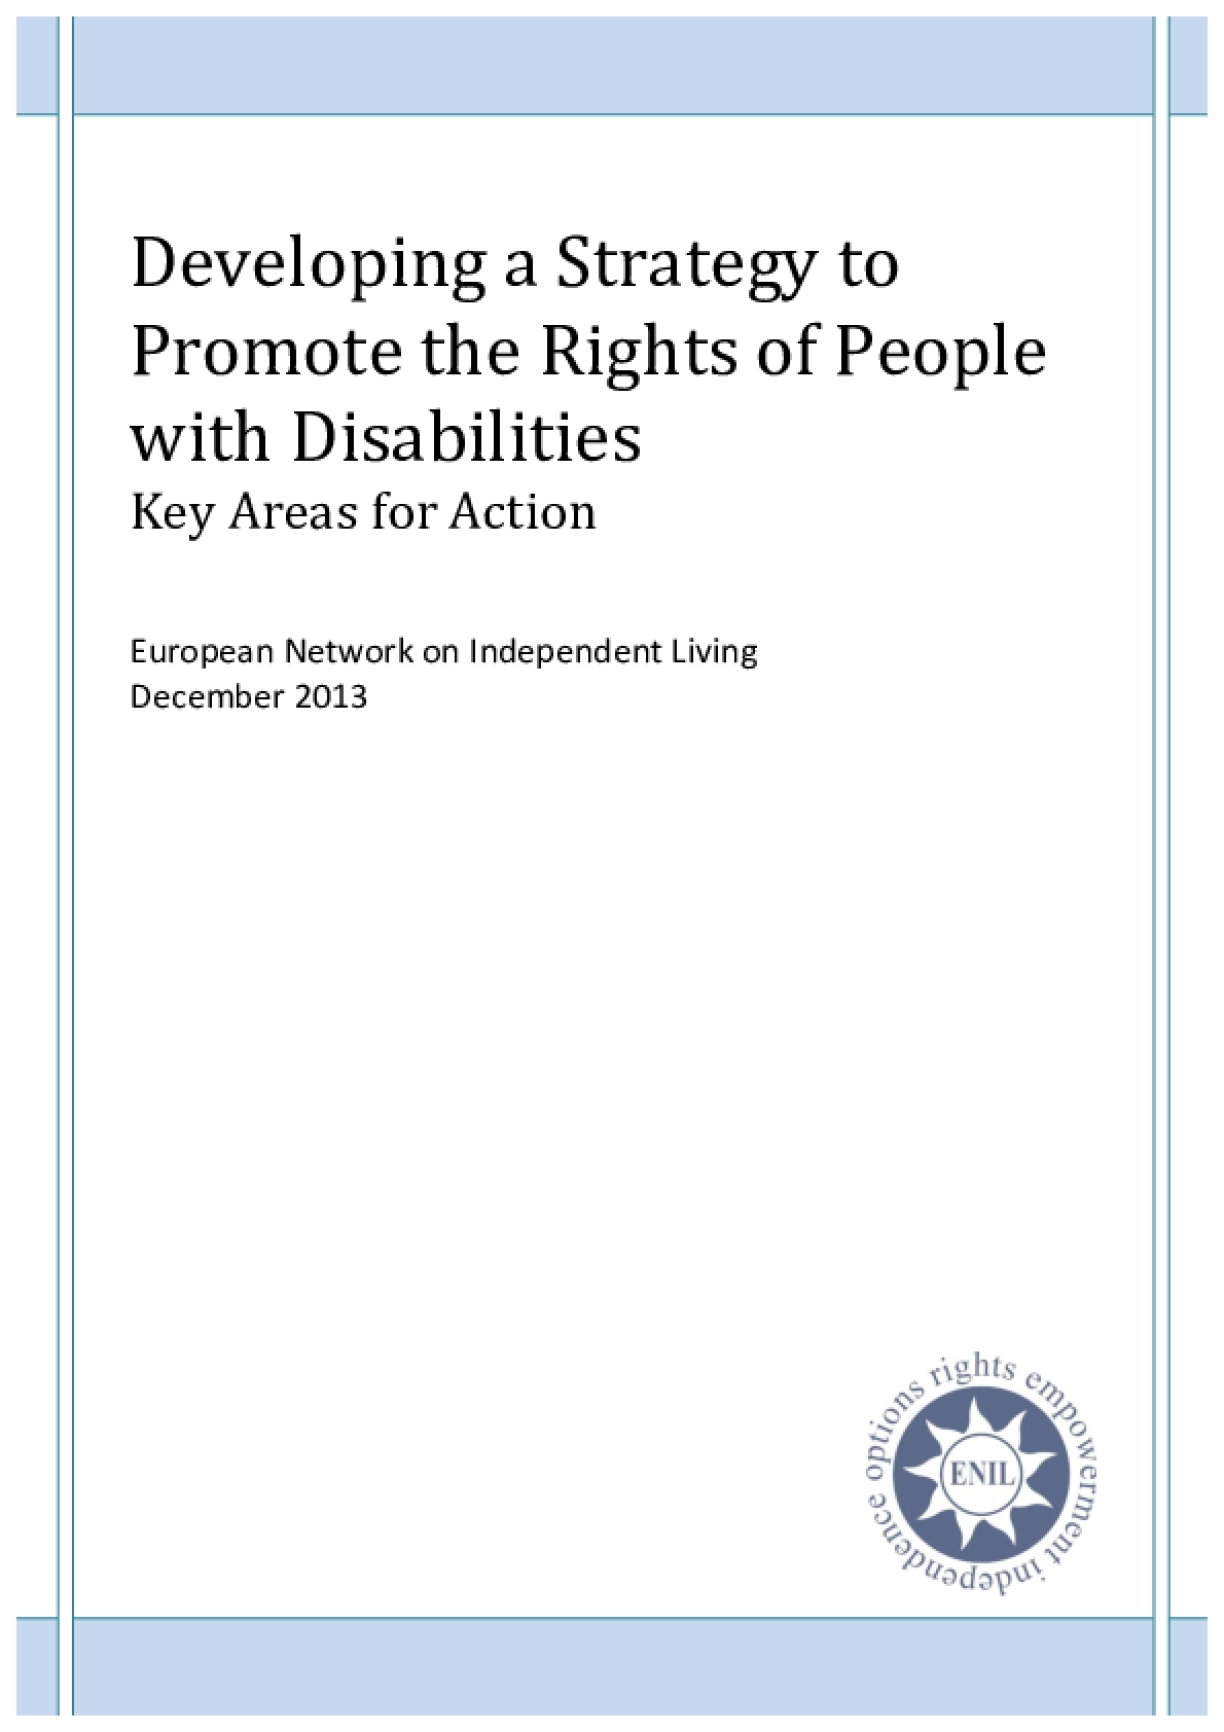 Developing a Strategy to Promote the Rights of People with Disabilities